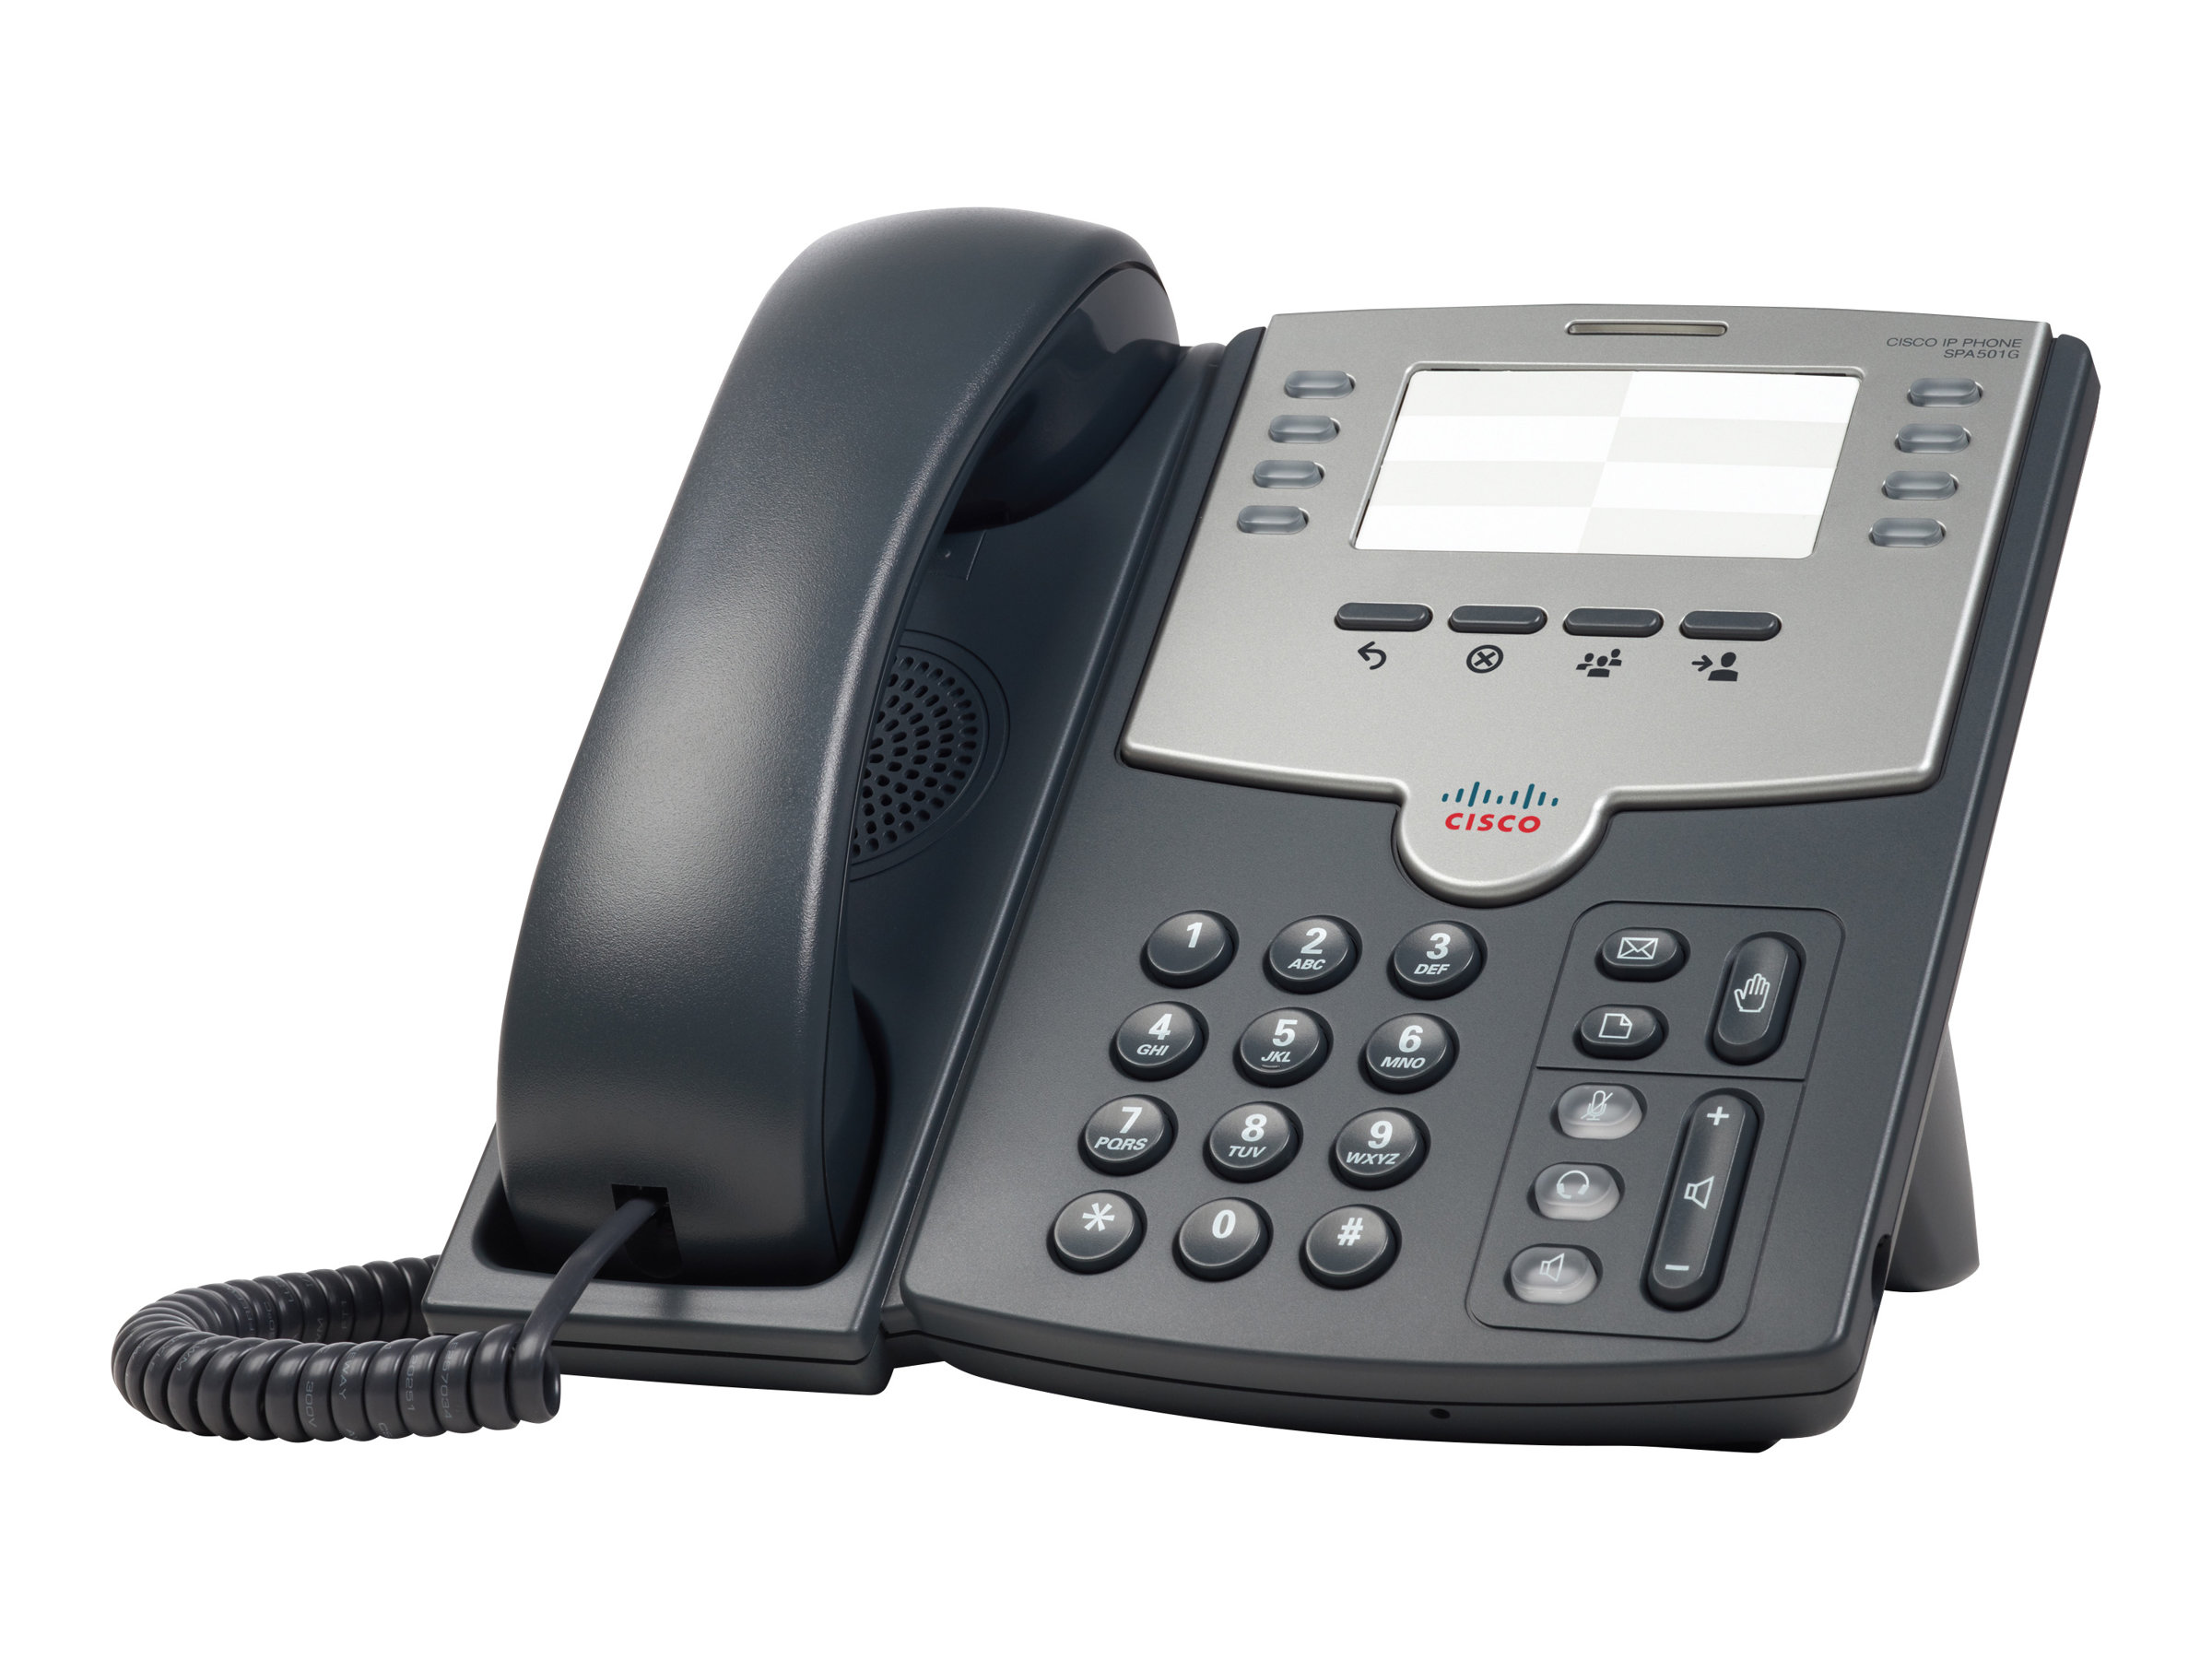 Cisco Small Business SPA 501G - VoIP-Telefon - SIP, SIP v2, SPCP - mehrere Leitungen - Silber, Dunkelgrau - für Small Business Pro Unified Communications 320 with 4 FXO